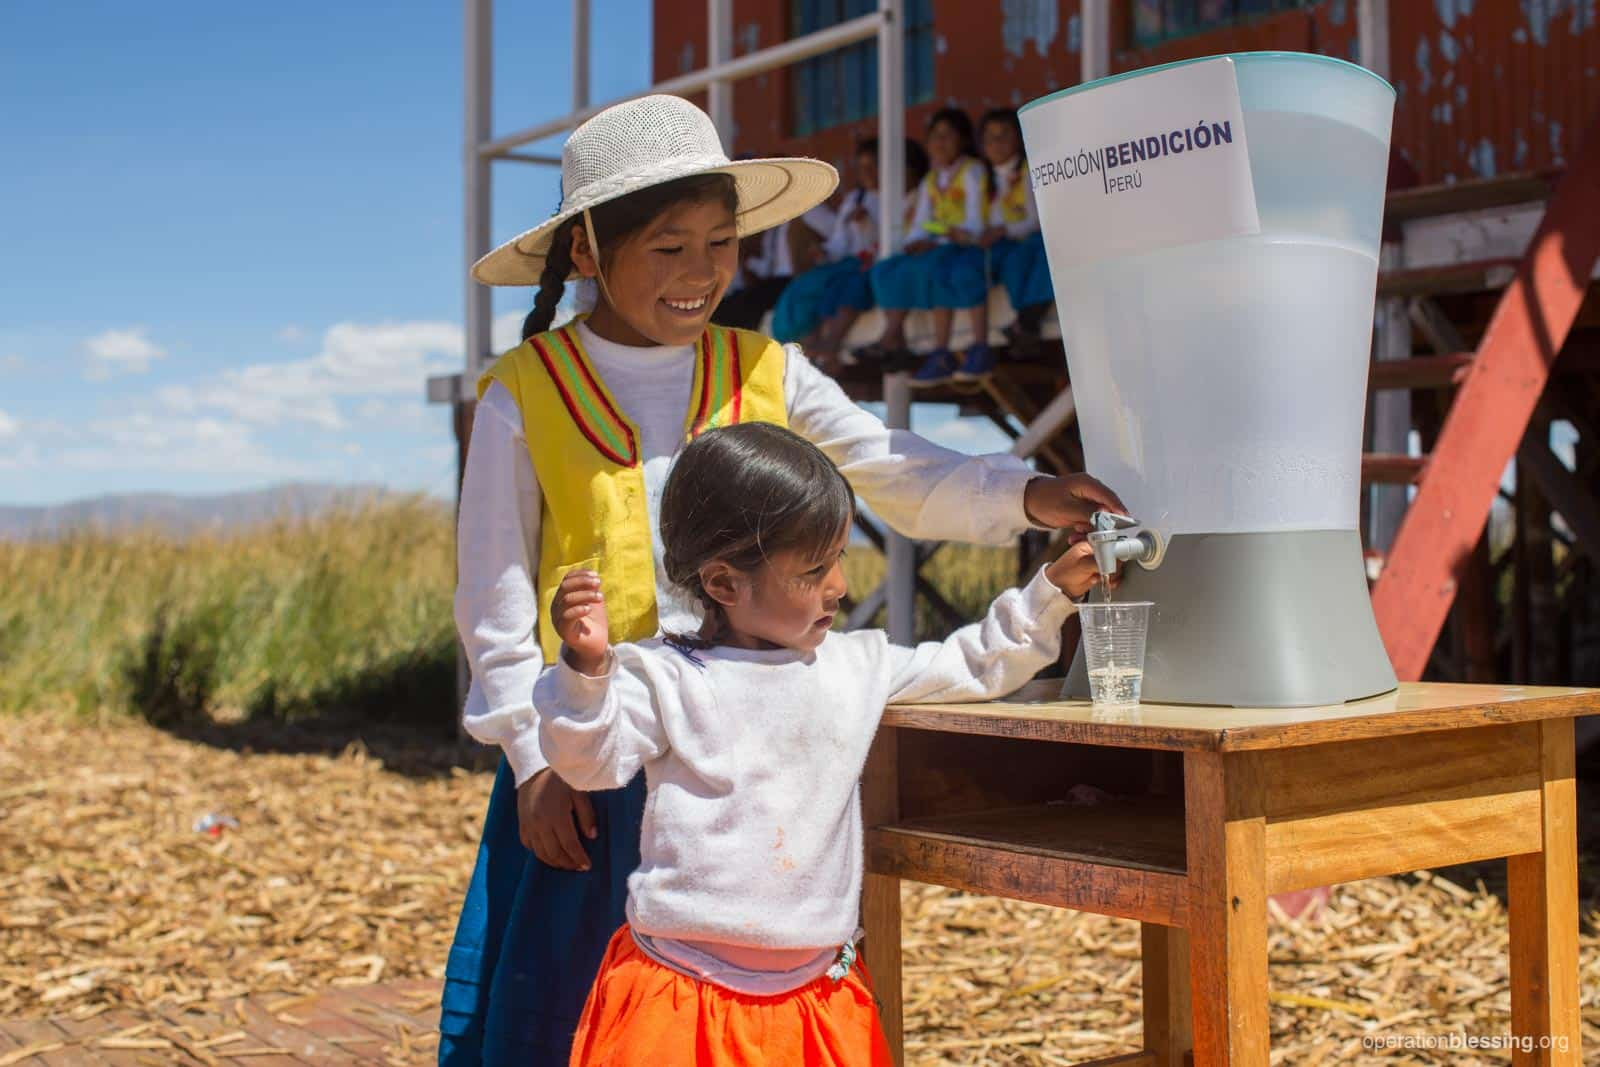 Zaida helps a younger child get safe water from their new Kohler Clarity filter.